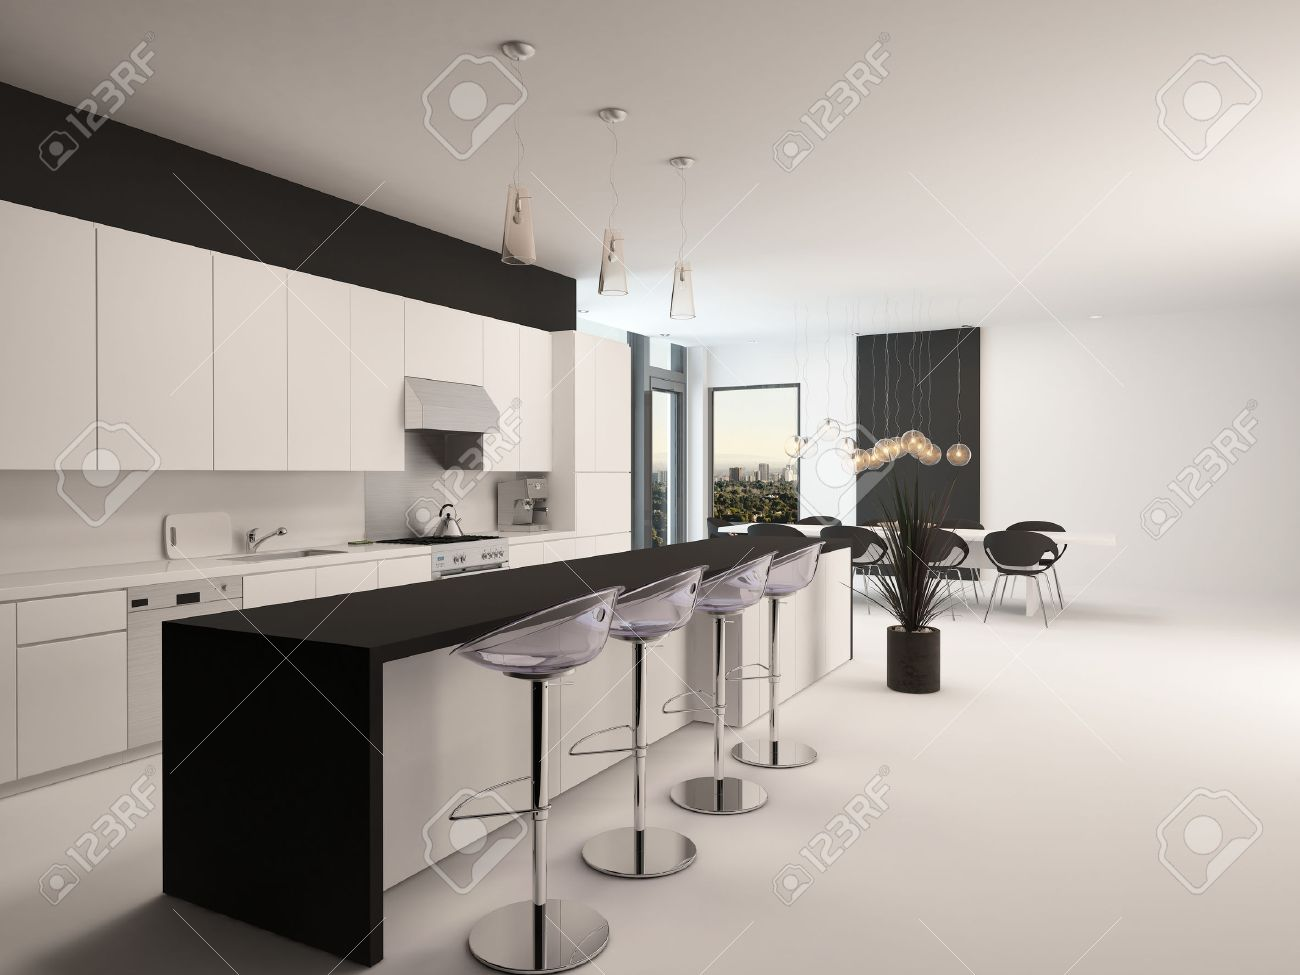 Modern Black And White Kitchen With A Long Receding Bar Counter ...